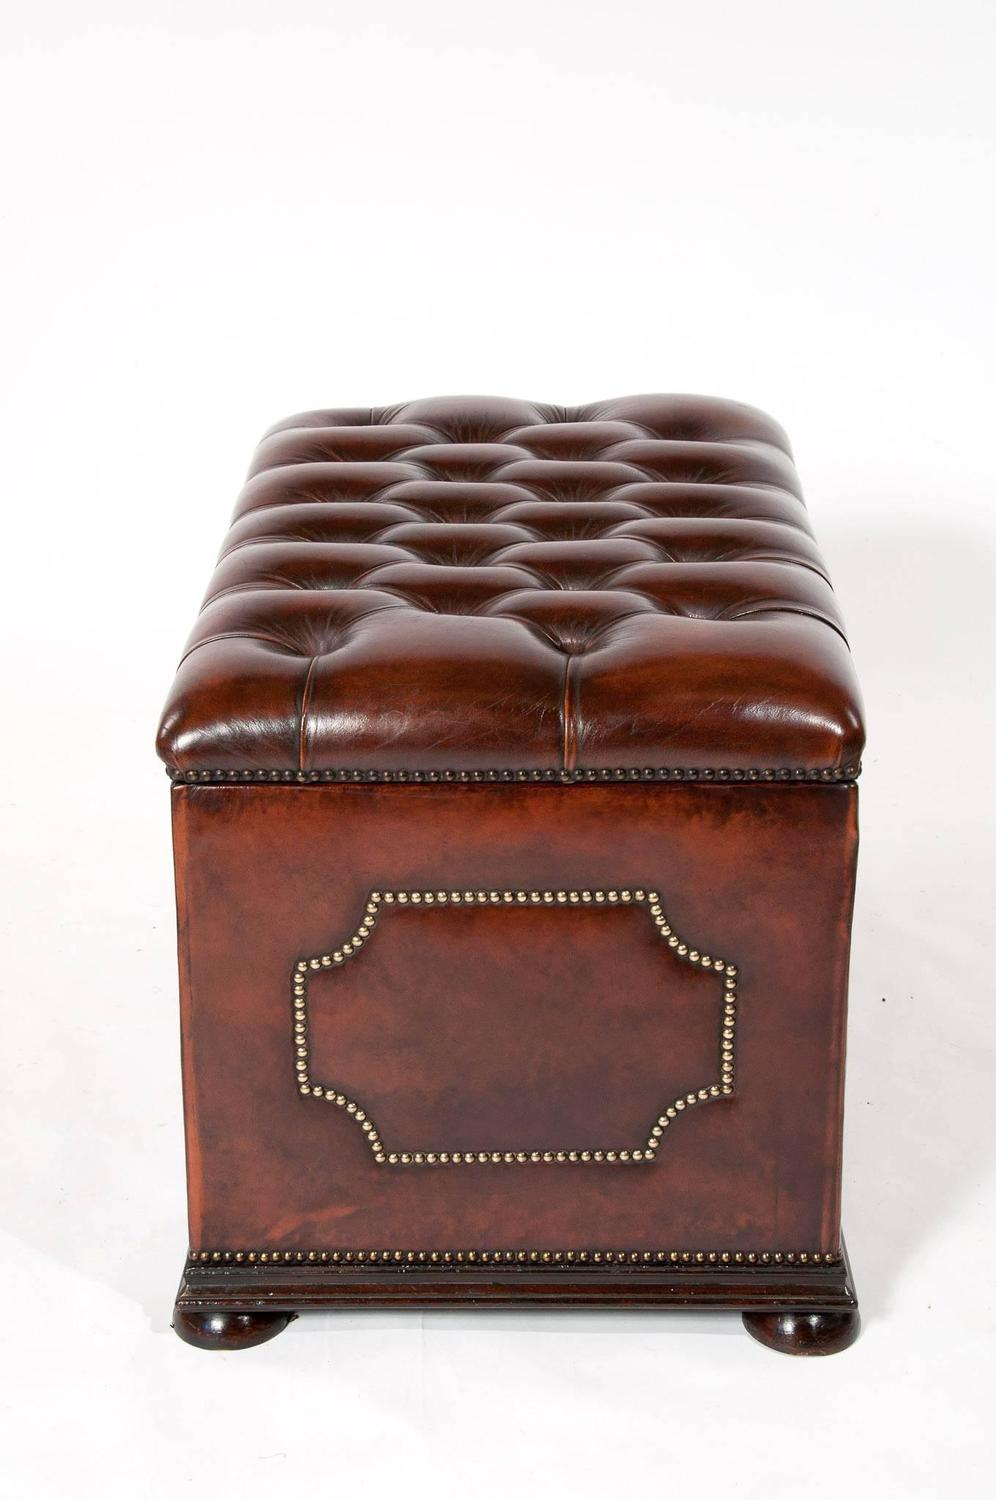 Antique Leather Upholstered Ottoman For Sale At 1stdibs